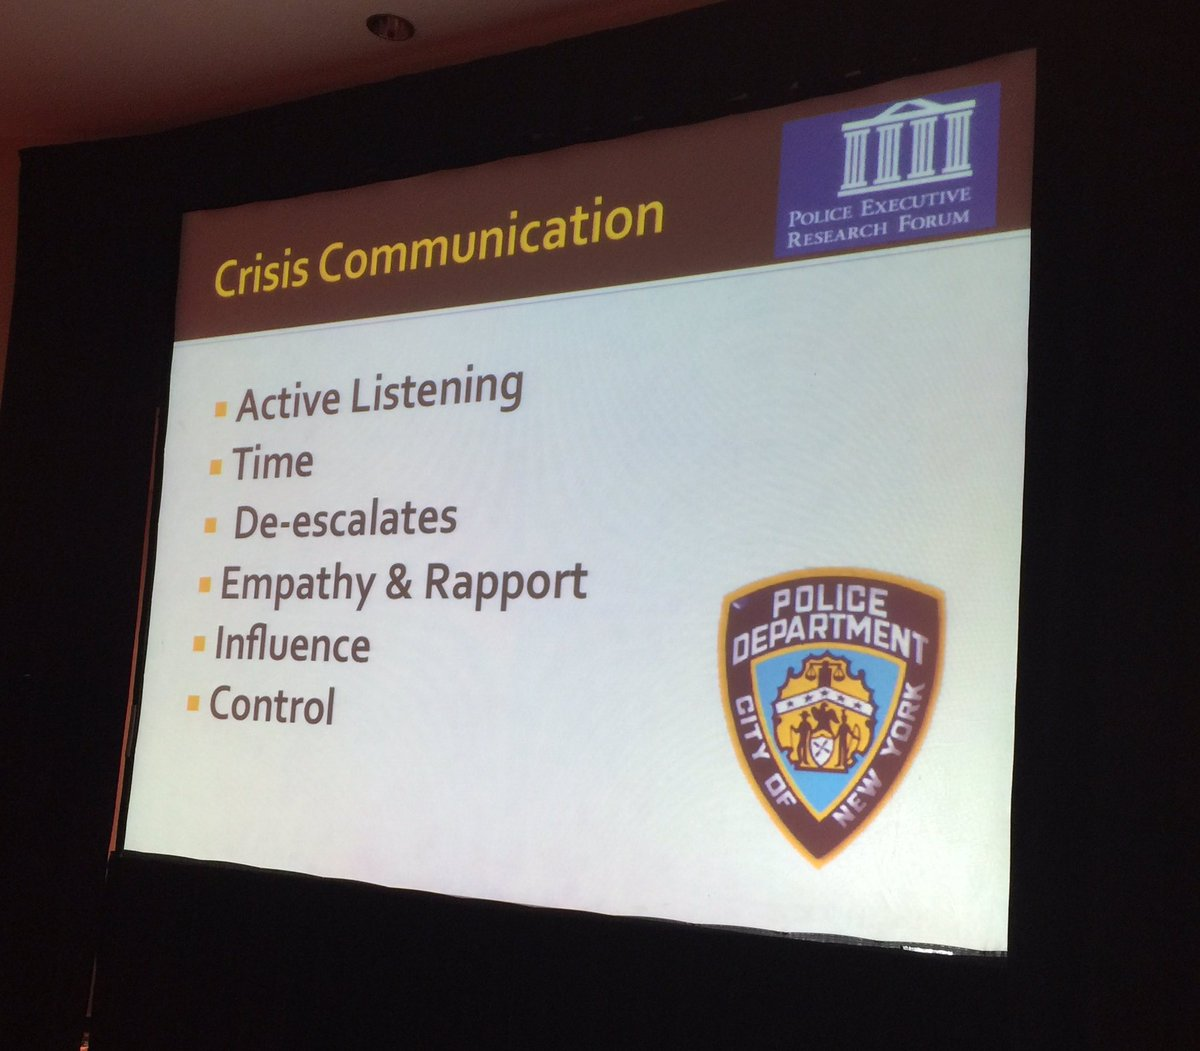 NYPD NEWS on Twitter: